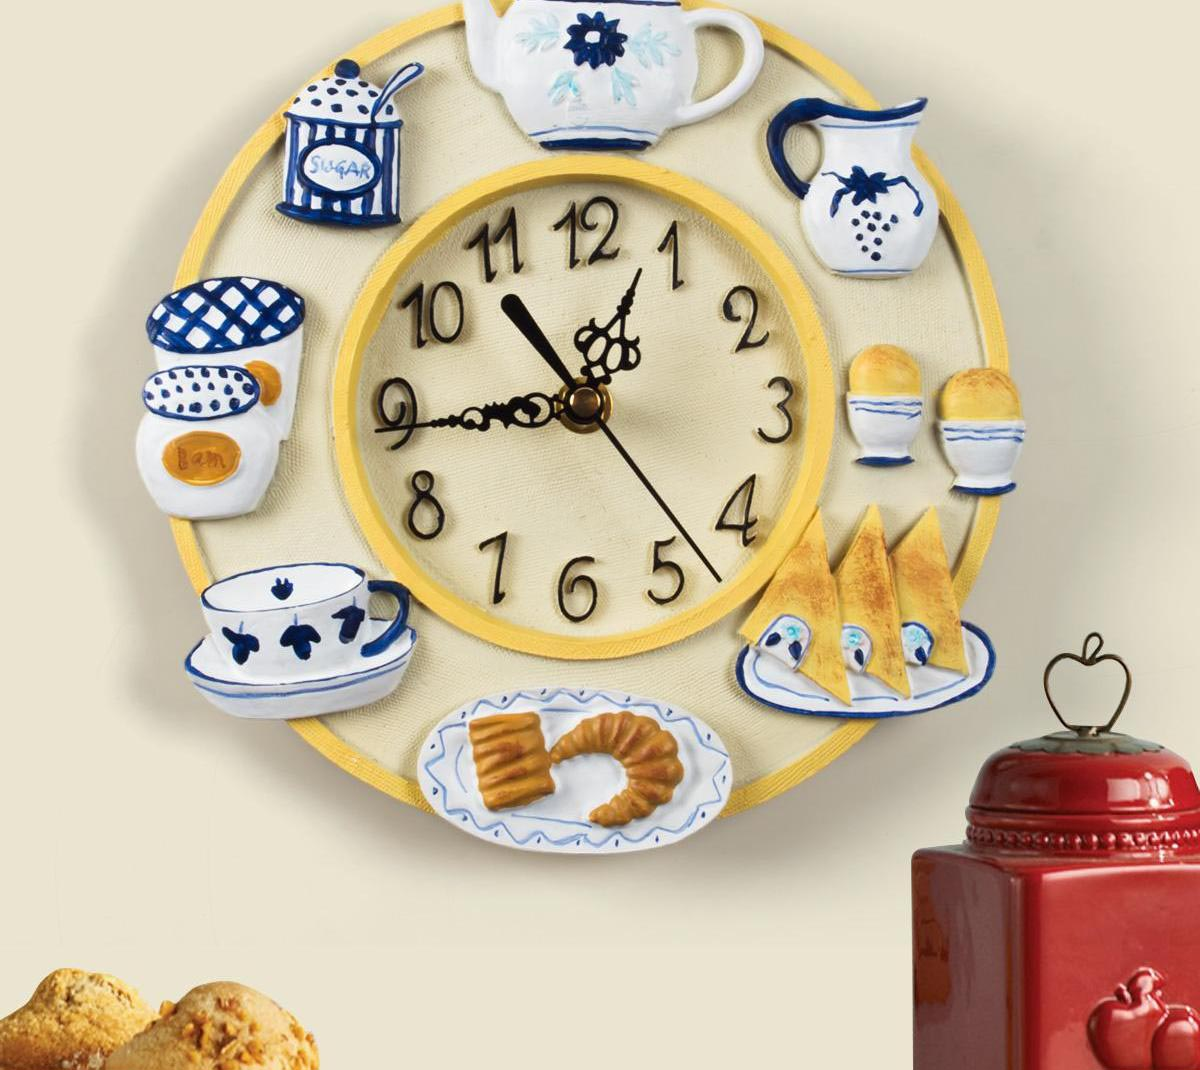 Decorative Kitchen Wall Clocks | Best Decor Things